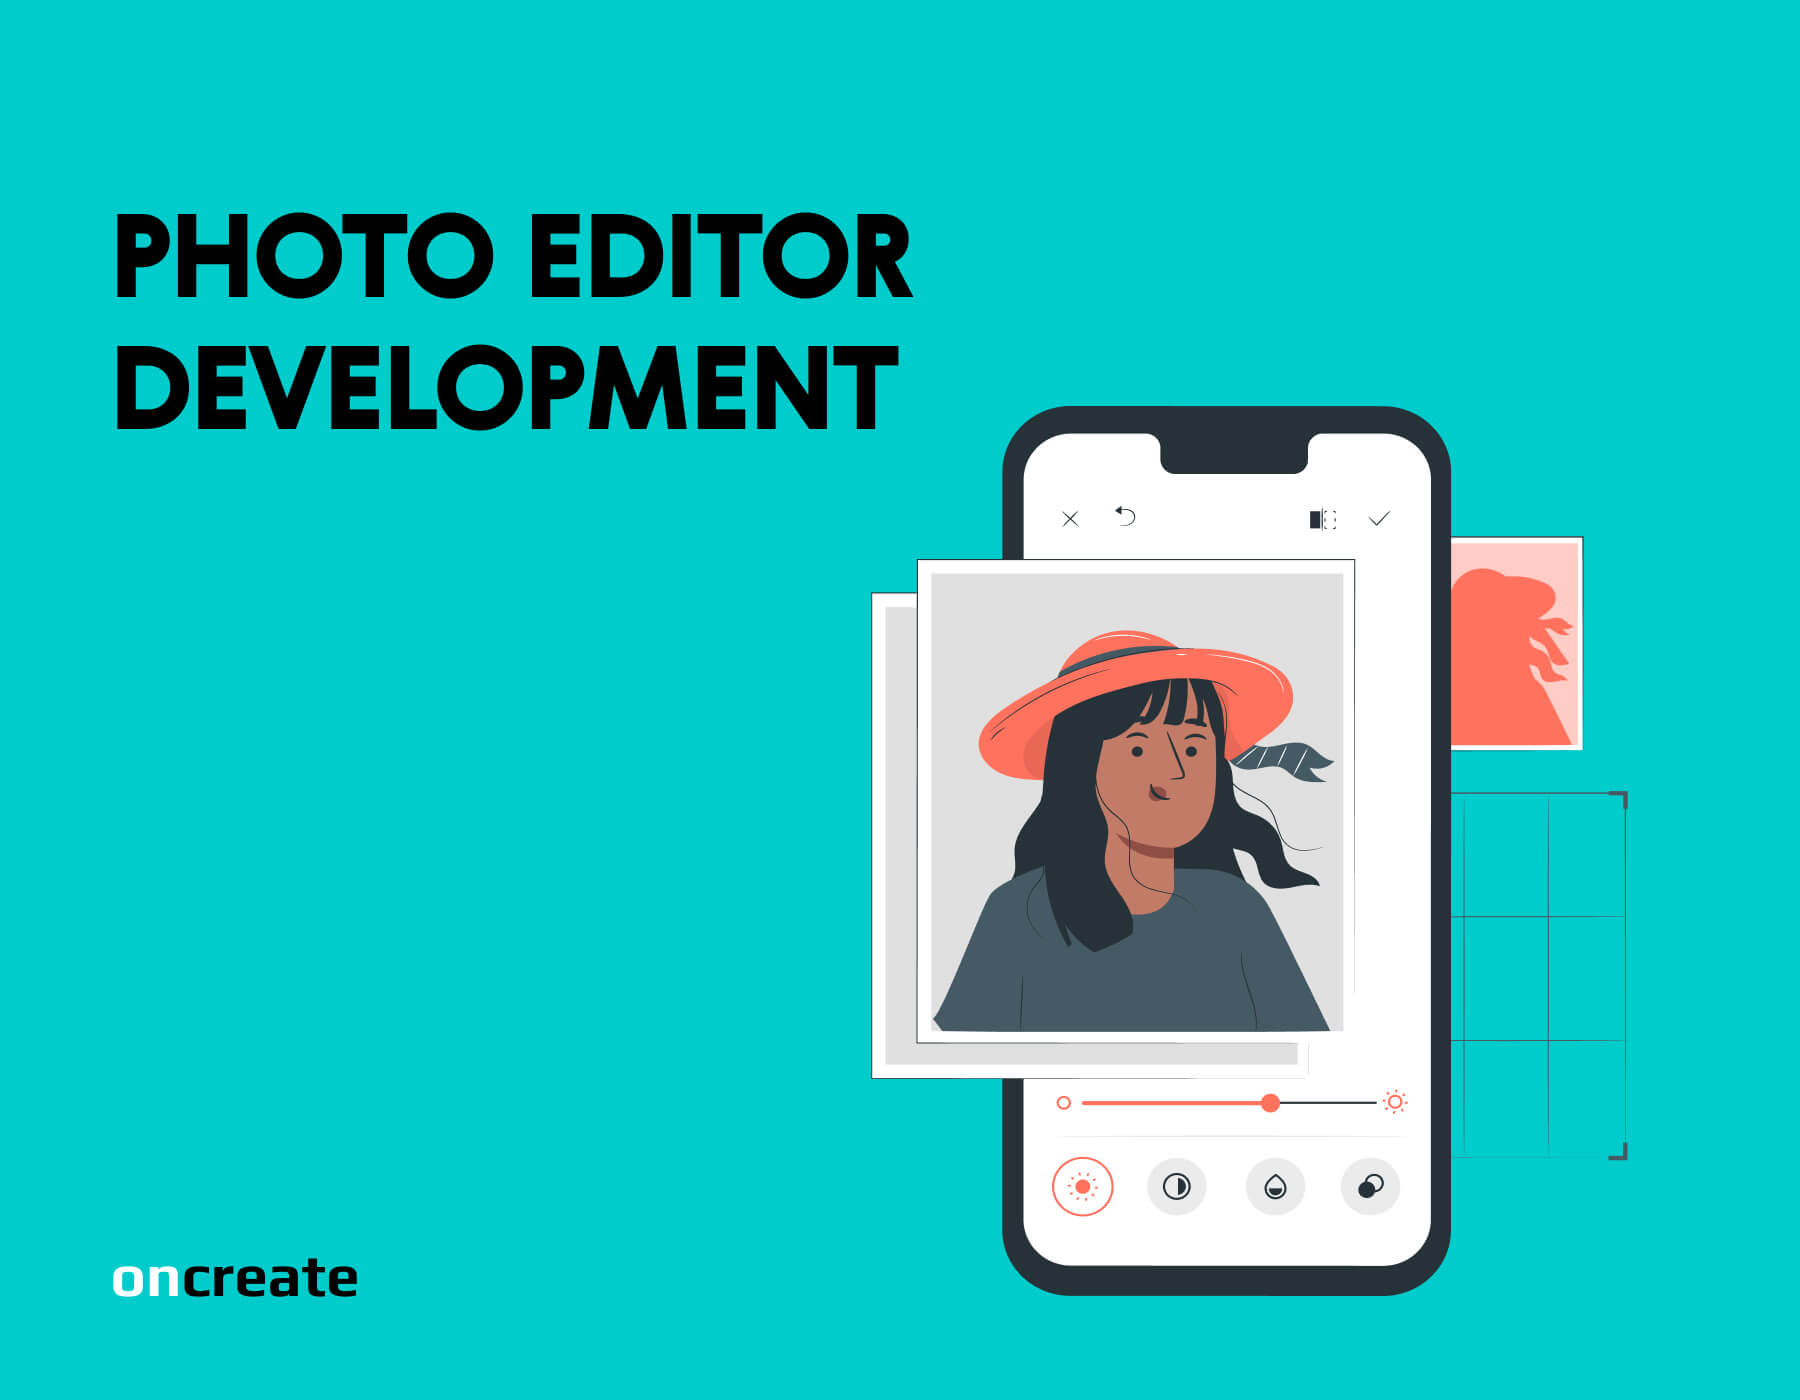 Photo Editor Development Details